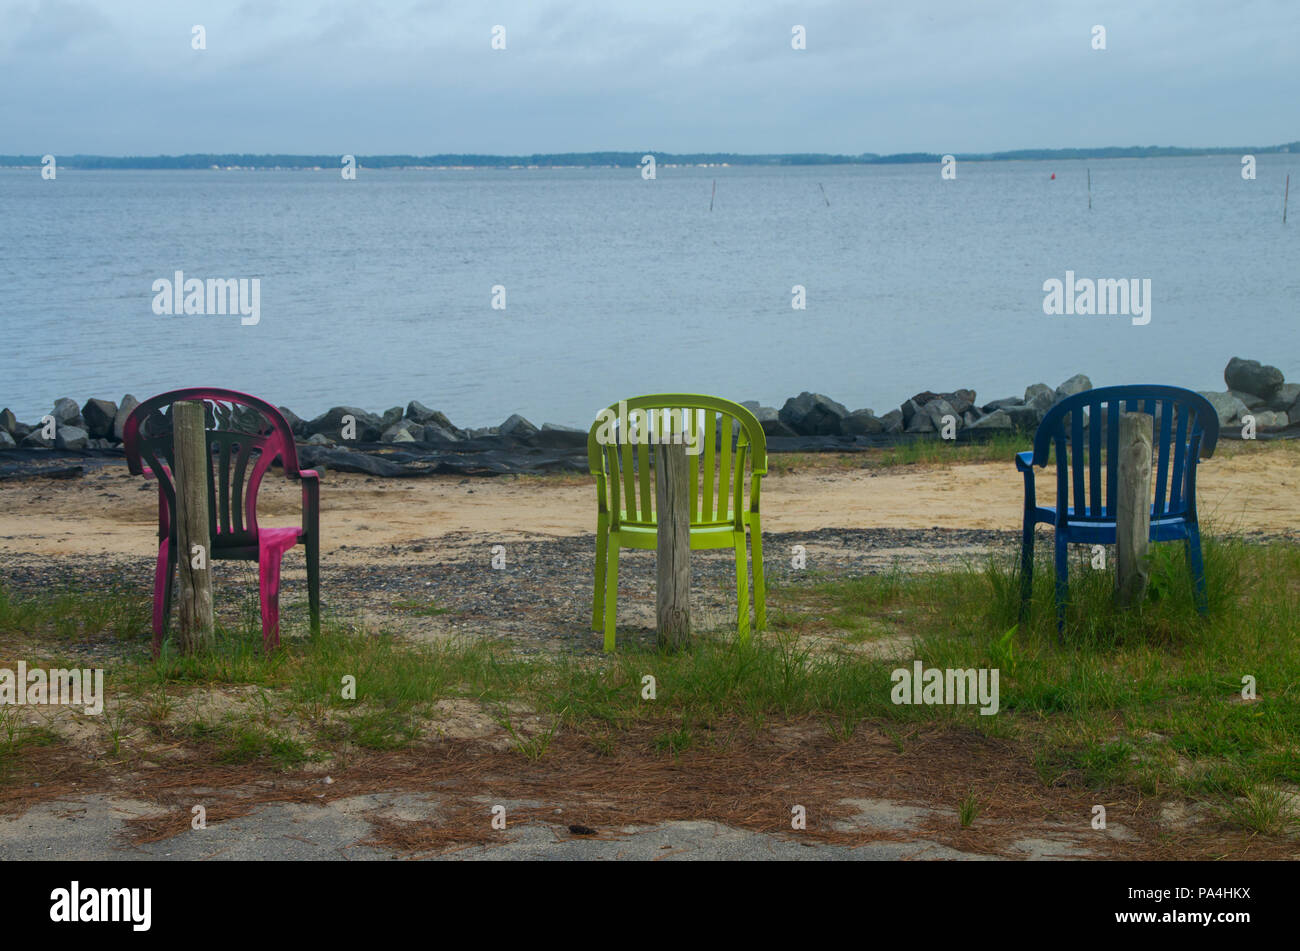 Three chairs stand ready for use in a campground in Delaware - Stock Image